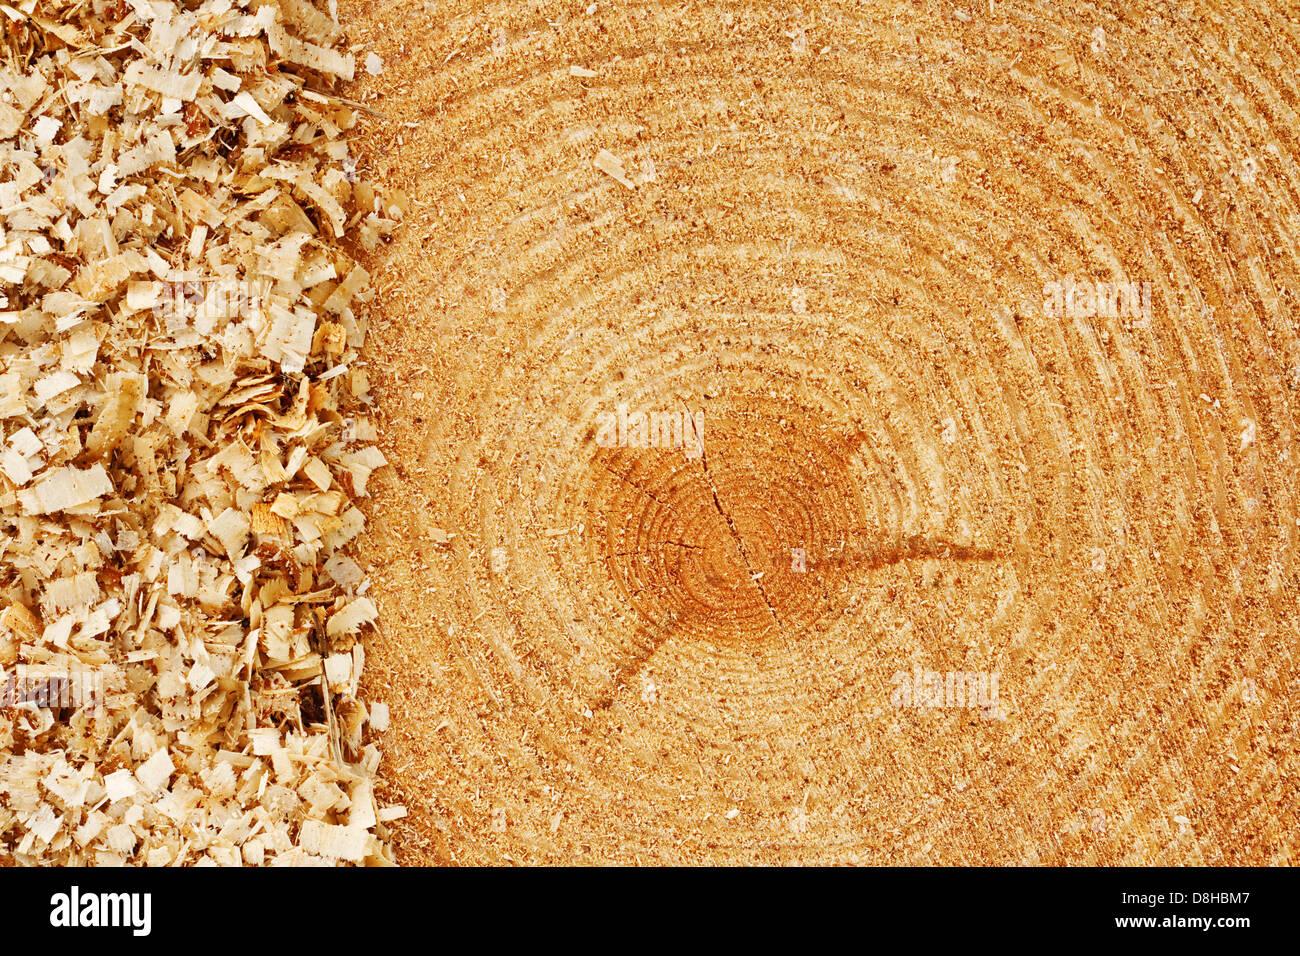 Growth rings on freshly cut fir tree with saw dust border good background for the lumber industry - Stock Image